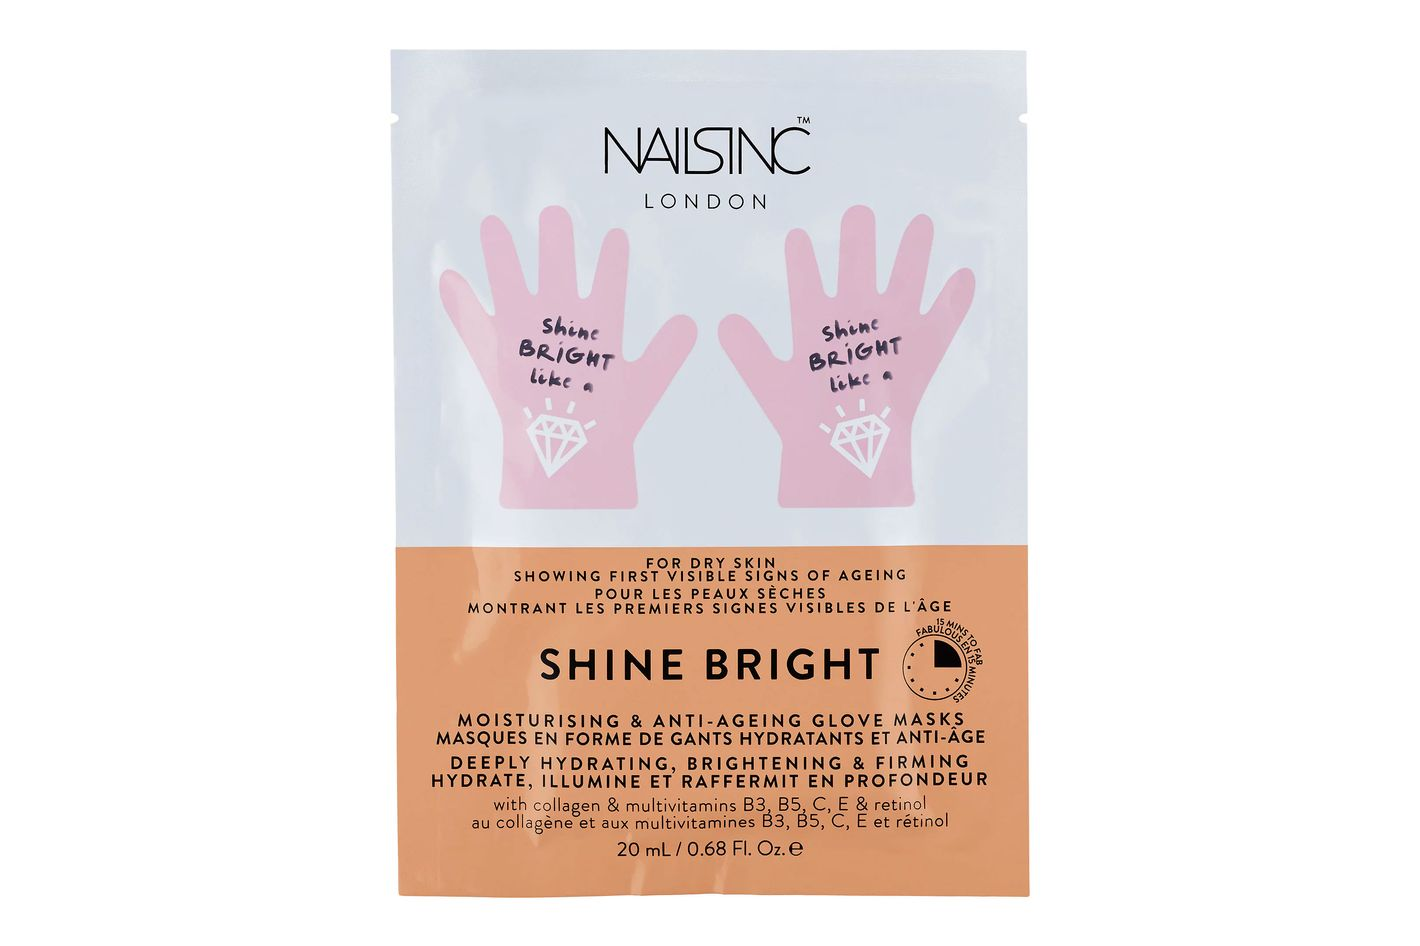 NAILS INC. Shine Bright Moisturising & Anti-Aging Hand Mask